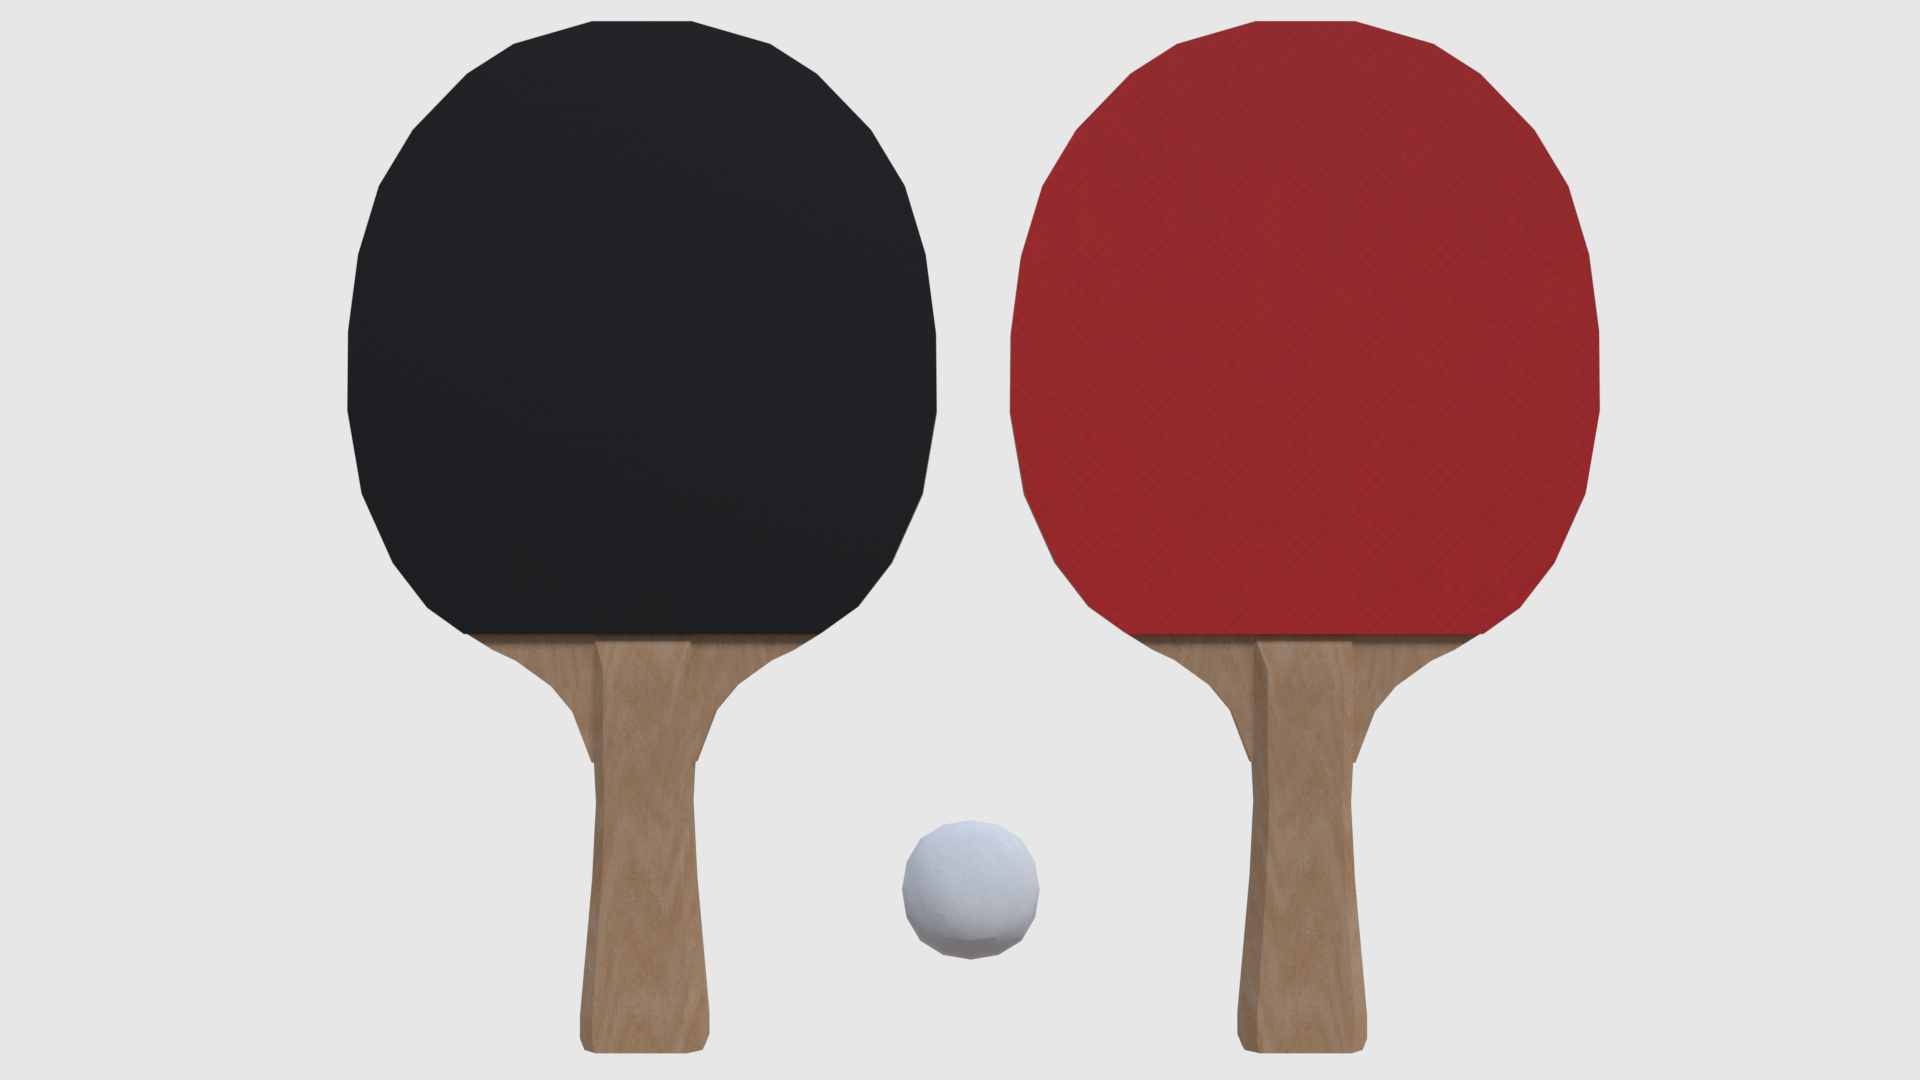 Table tennis racket png -  9 Png